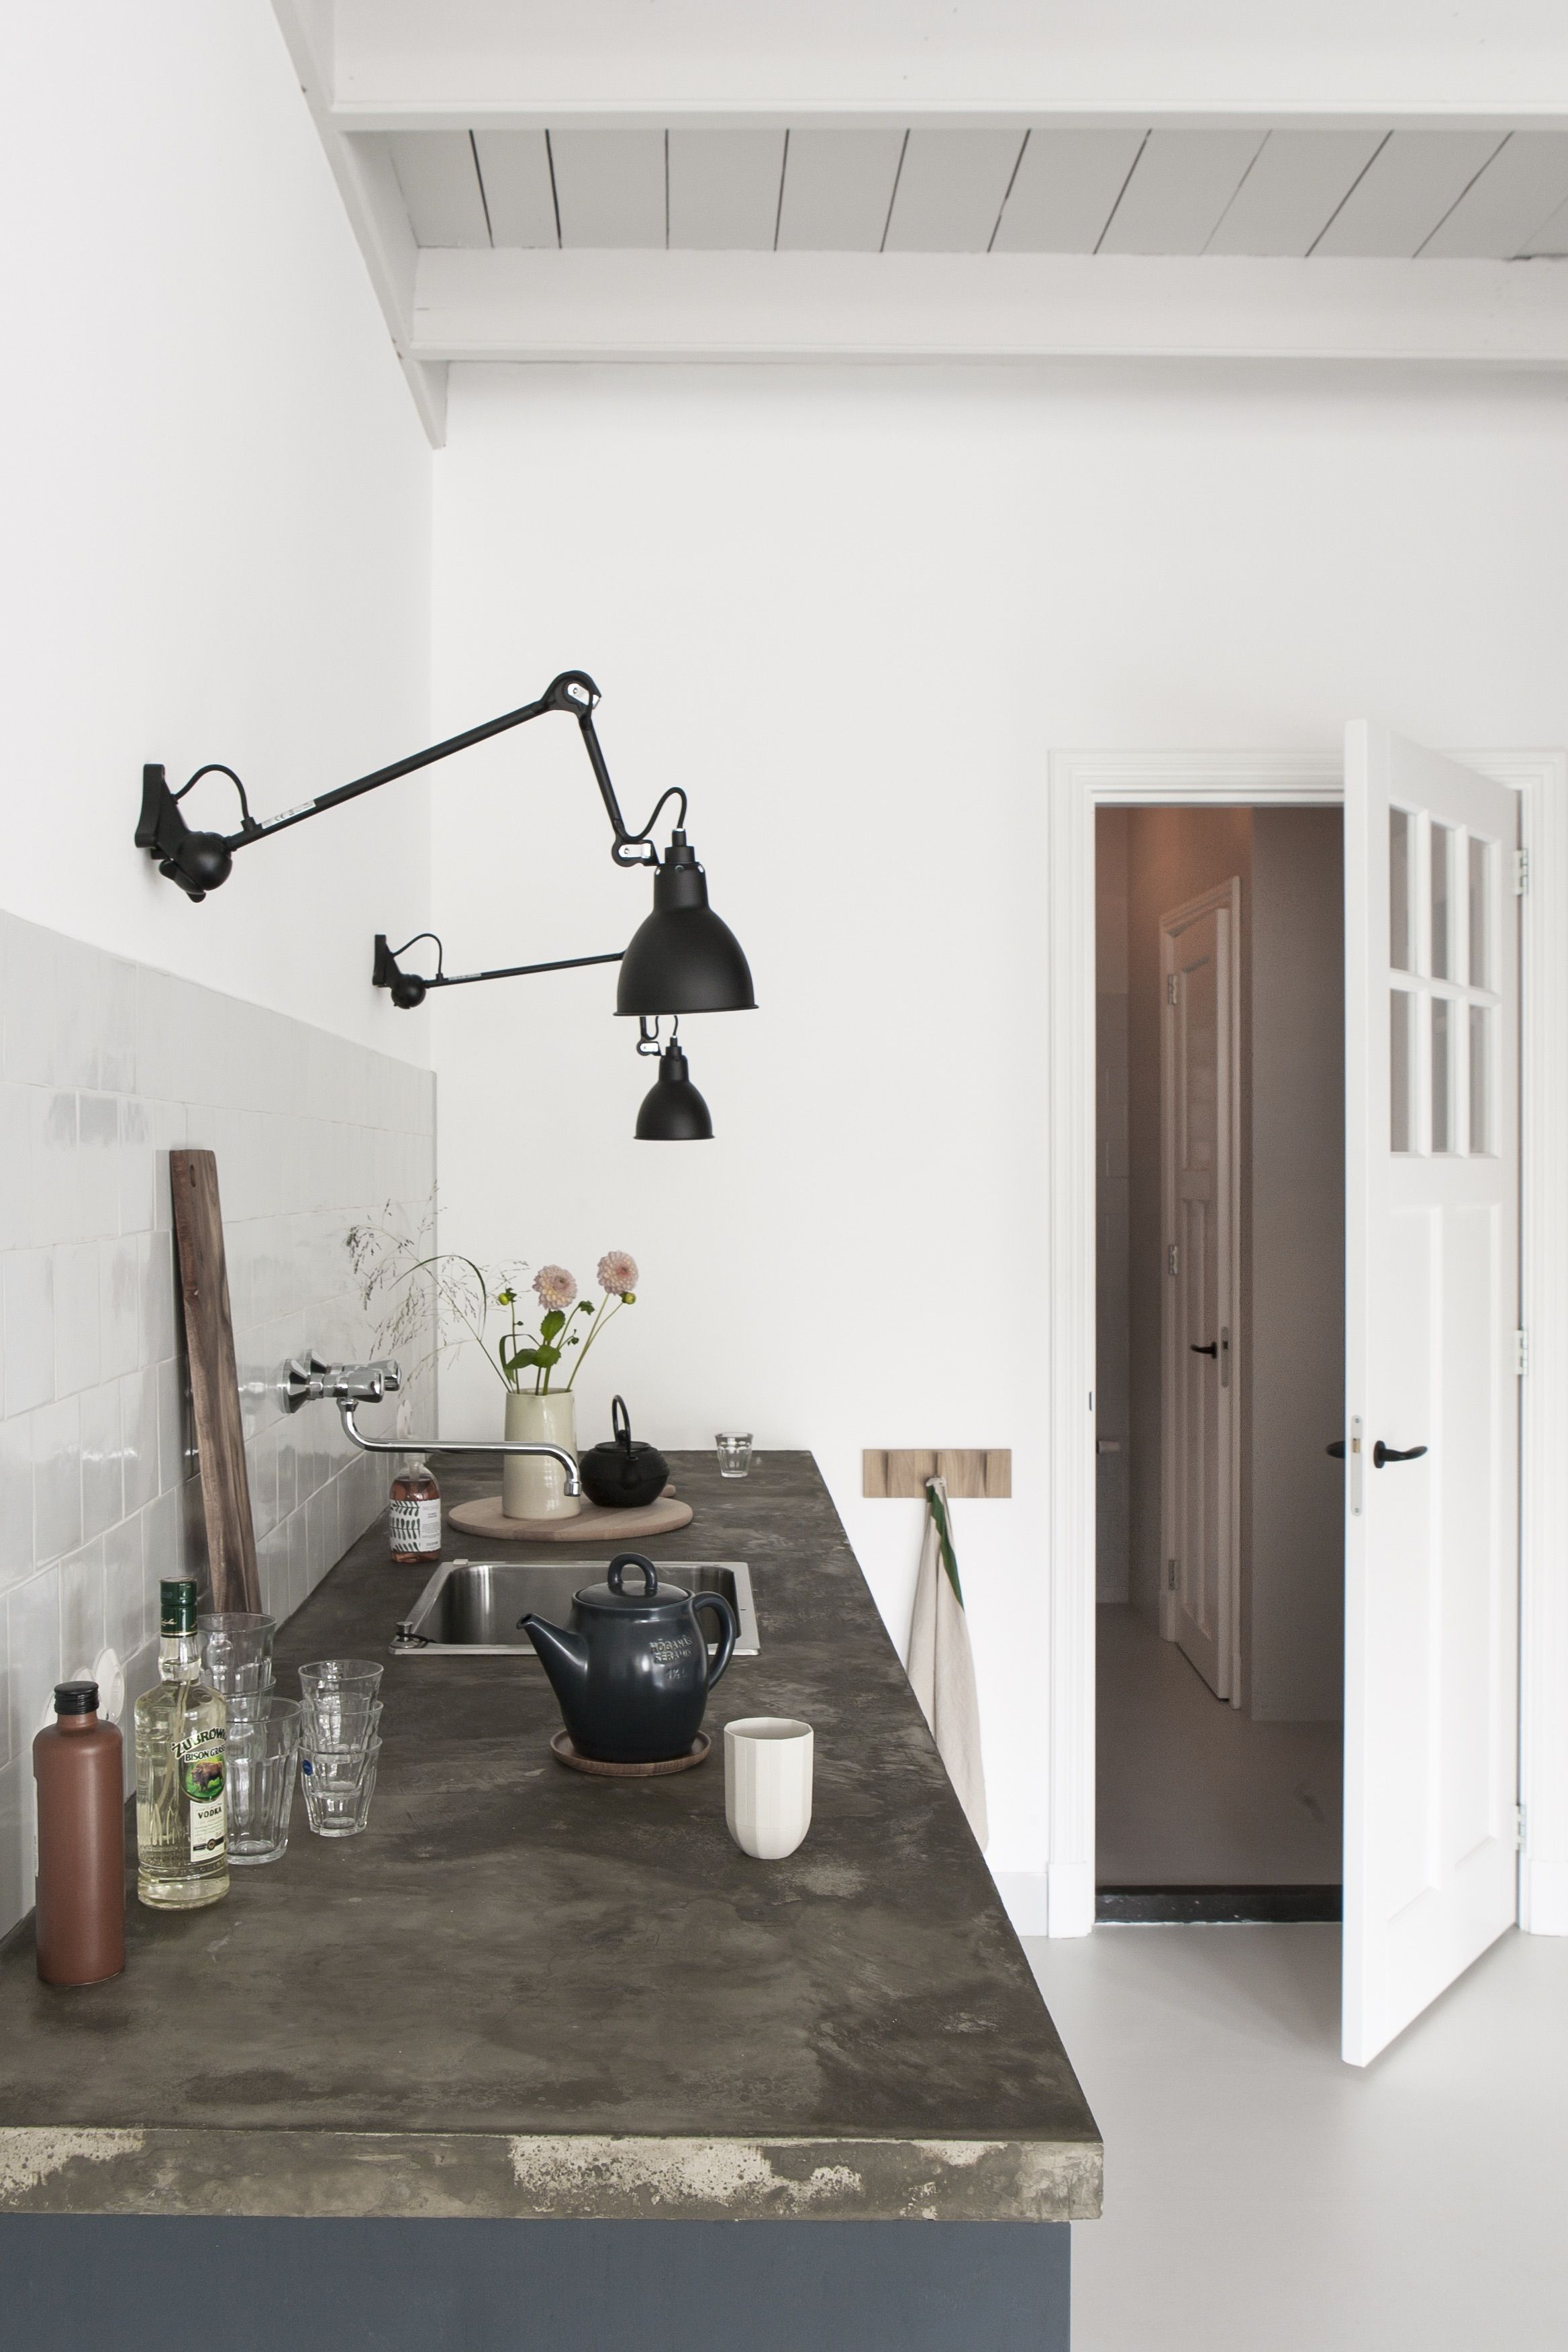 Merveilleux Black Wall Mounted Task Lighting In The Kitchen |black Lampe Gras Wall  Lights | Kitchen Lighting | Kitchen Of The Week: The Curtained Kitchen,  Dutch Modern ...